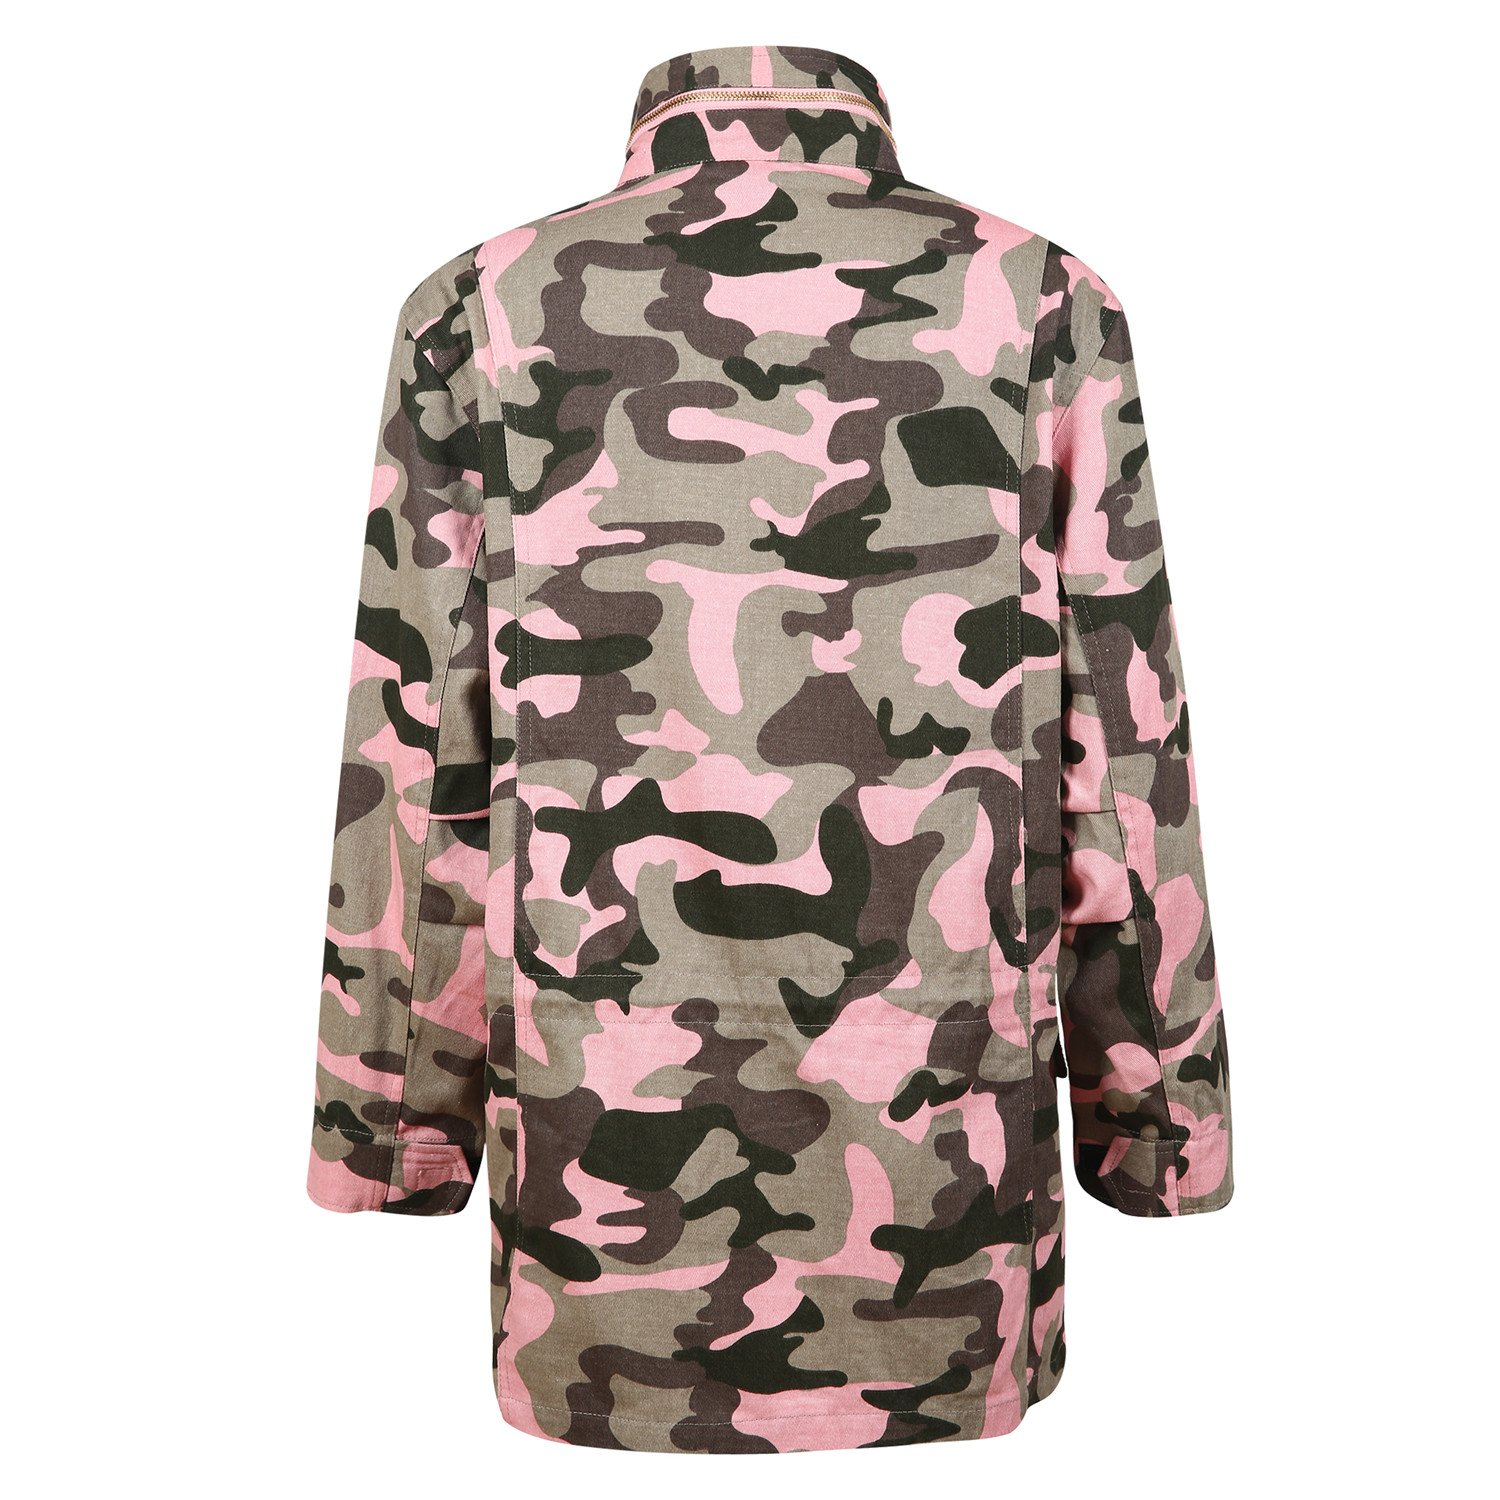 cee362fc4516d Amazon.com  HaoDuoYi Womens Casual Camo Lightweight Zipper Outwear Jacket   Clothing